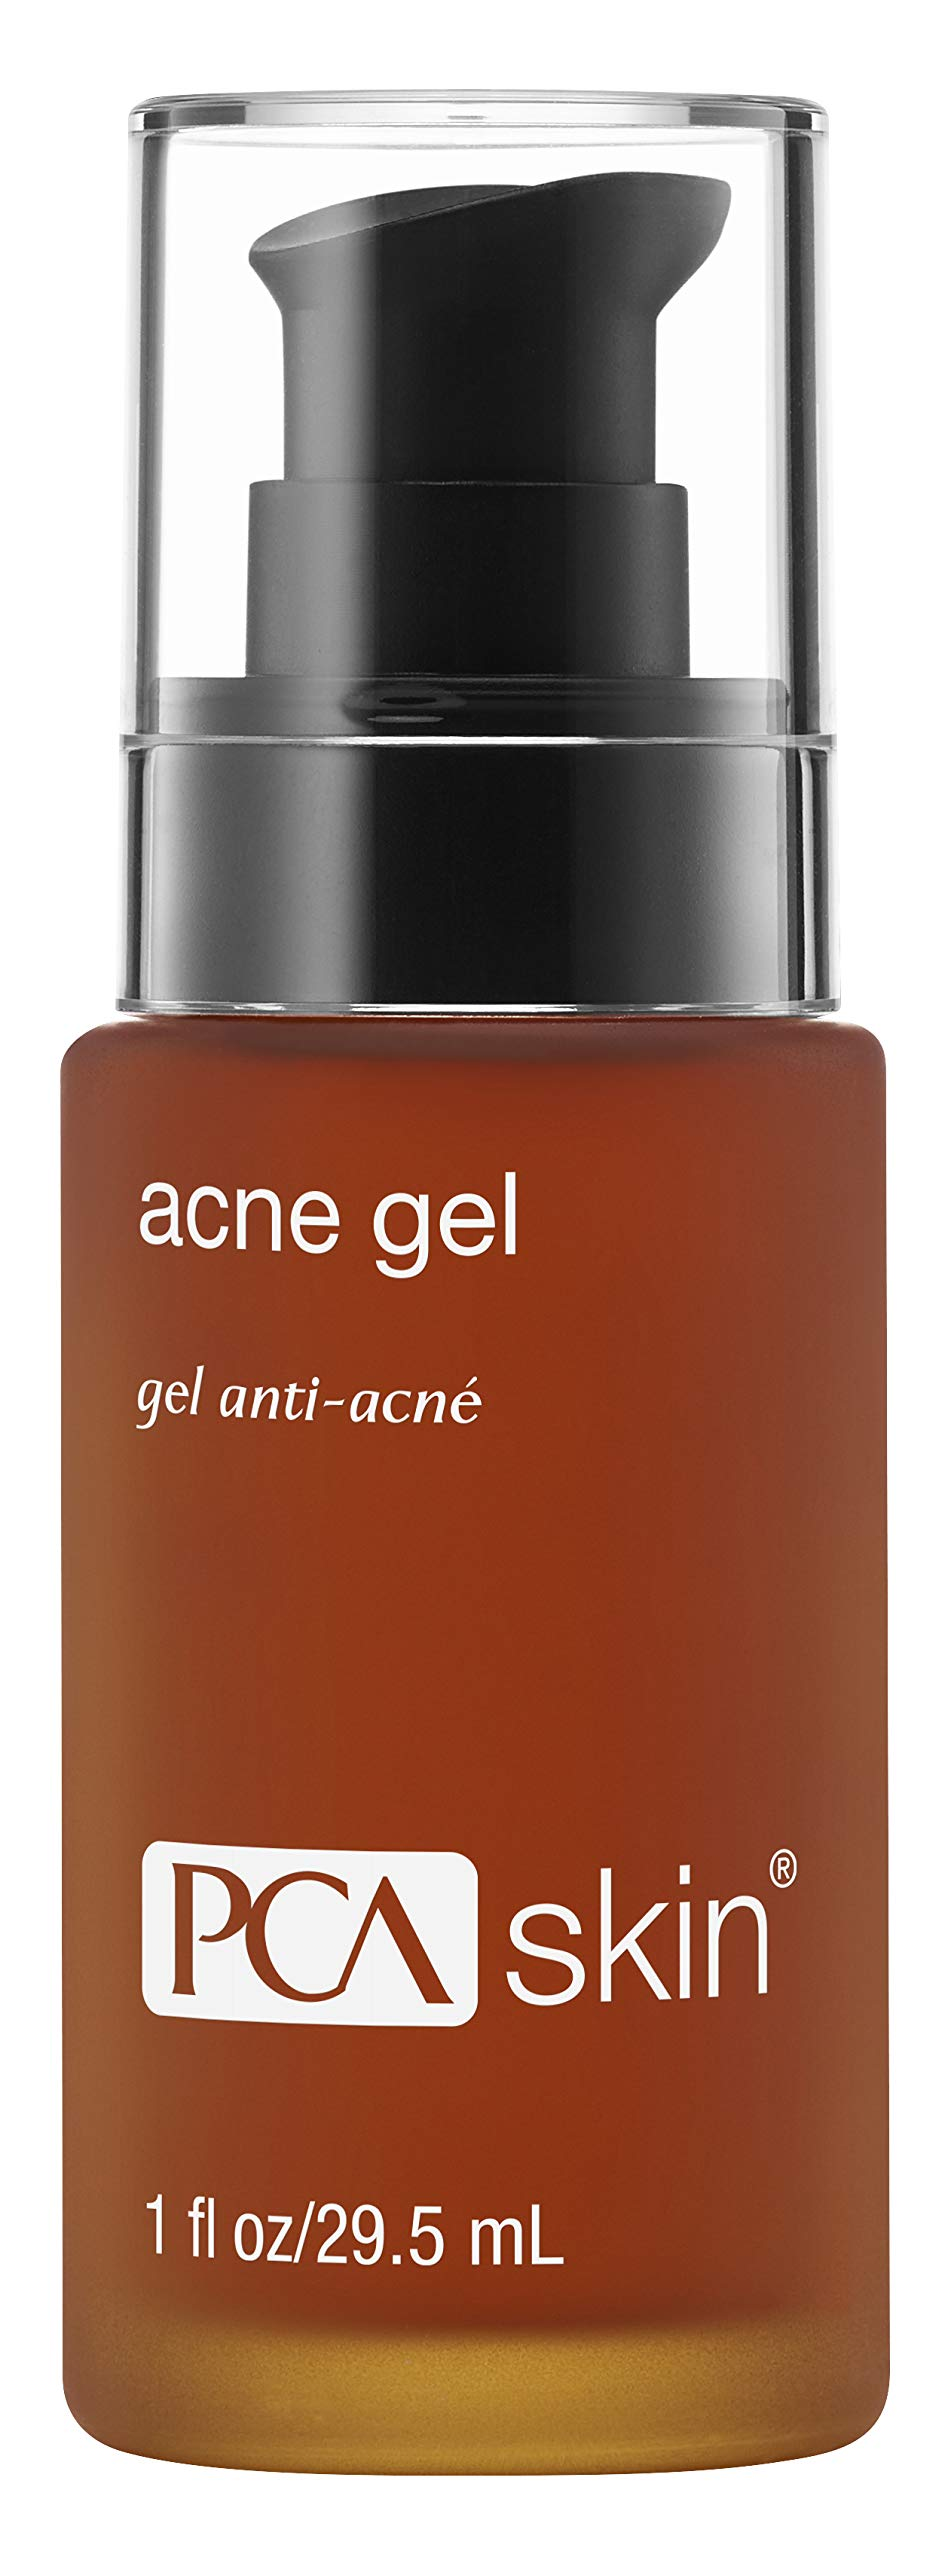 PCA SKIN Acne Gel, 2% Salicylic Acid Face and Spot Treatment, 1 fluid ounce